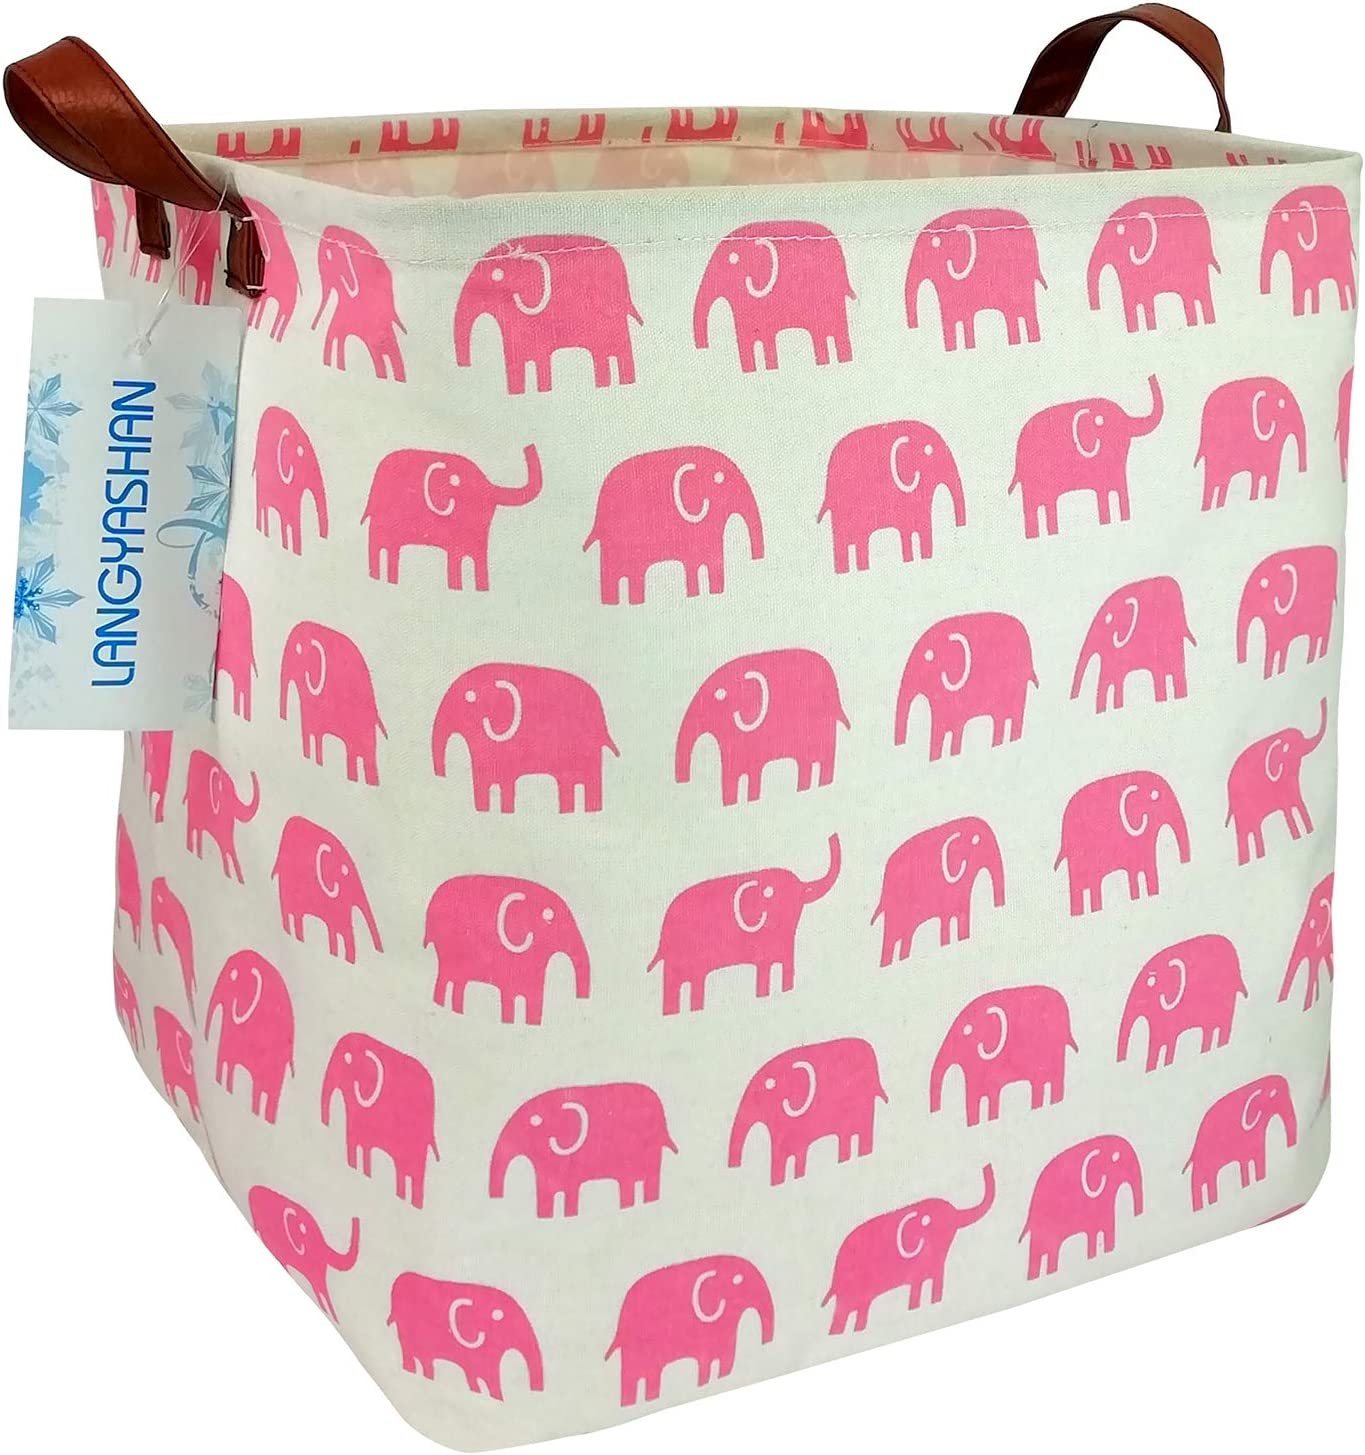 LANGYASHAN Square Storage Bins Waterproof Canvas Kids Laundry/Nursery Boxes for Shelves/Gift Baskets/Toy Organizer/Baby Room Decor (Pink Elephant)